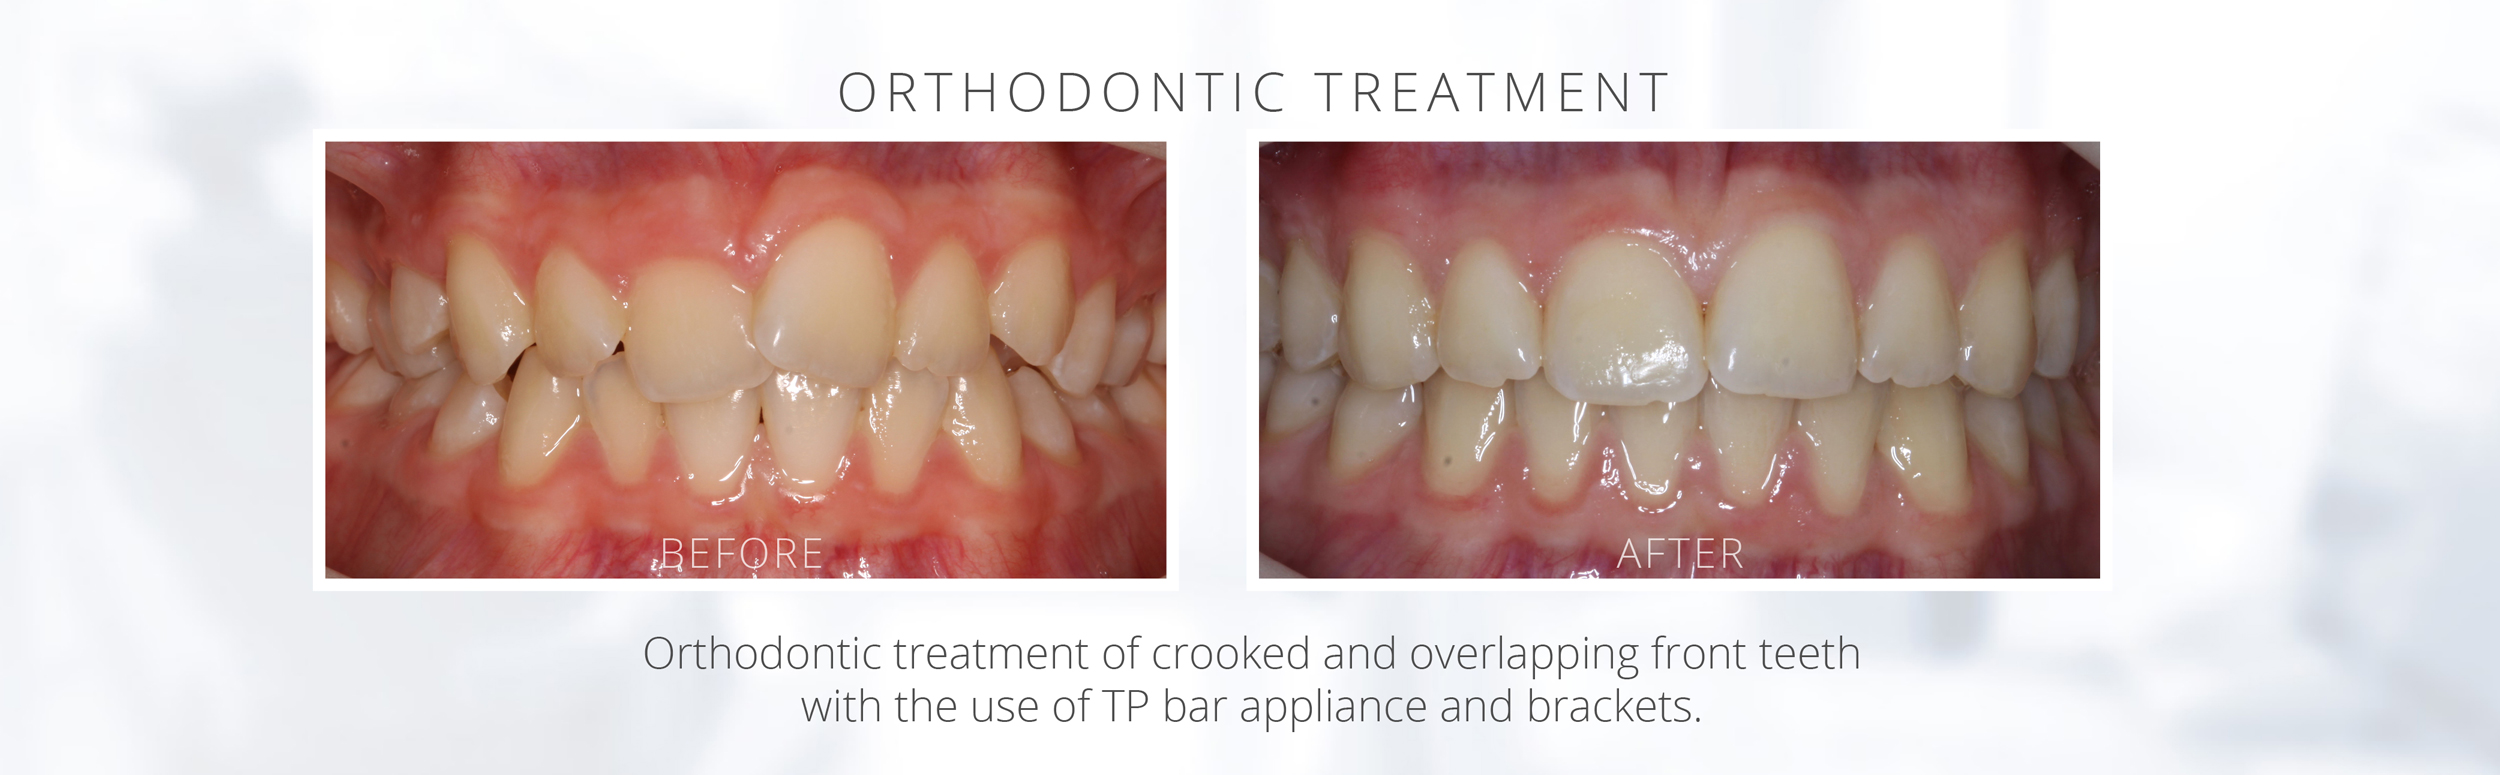 Orthodontic treatment of crooked and overlapping front teeth with the use of TP bar appliance and brackets